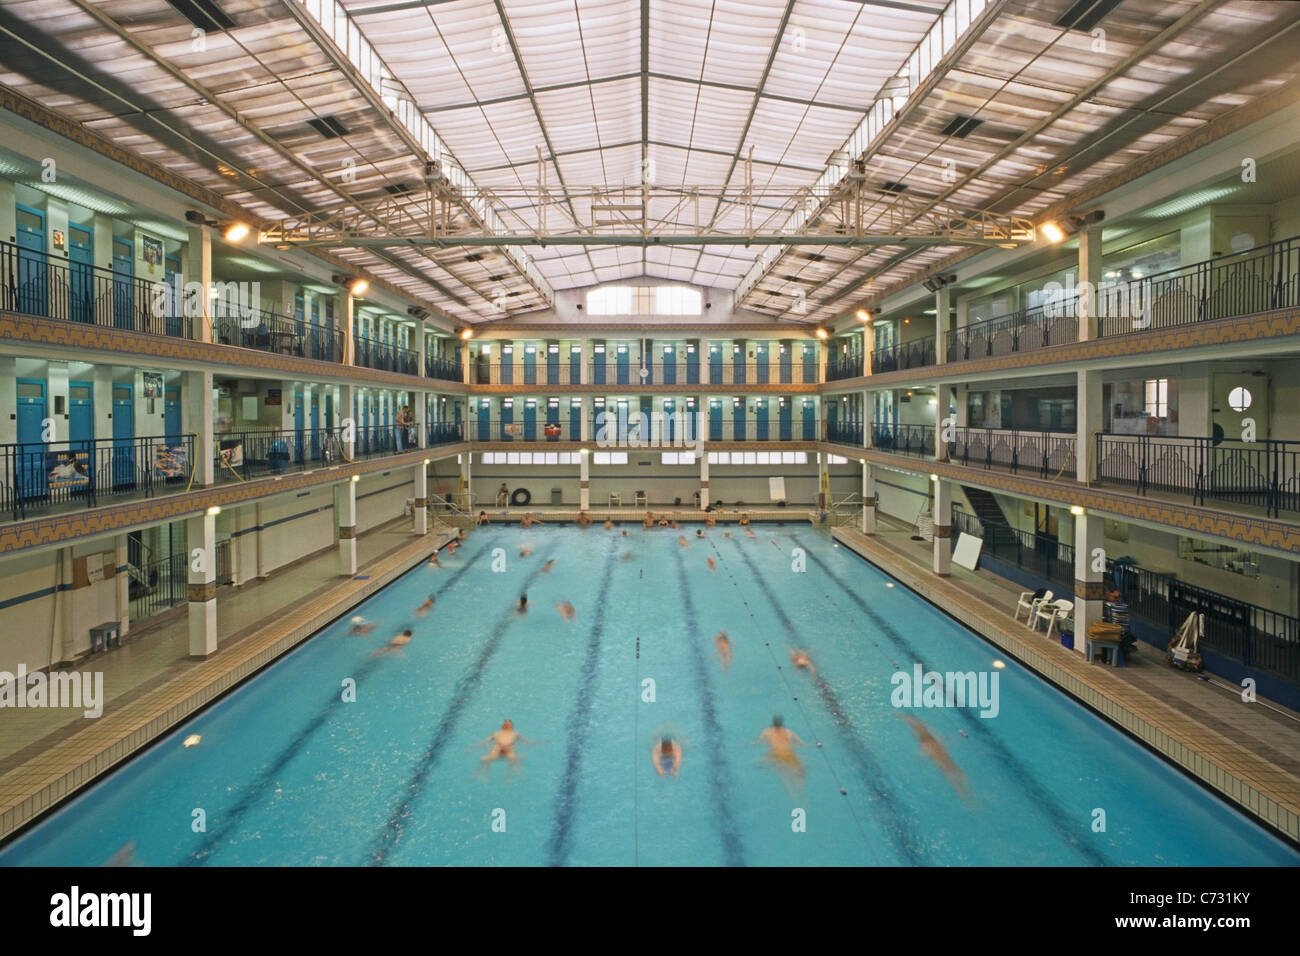 Piscine Pontoise Fitness Pontoise Stock Photos Pontoise Stock Images Alamy